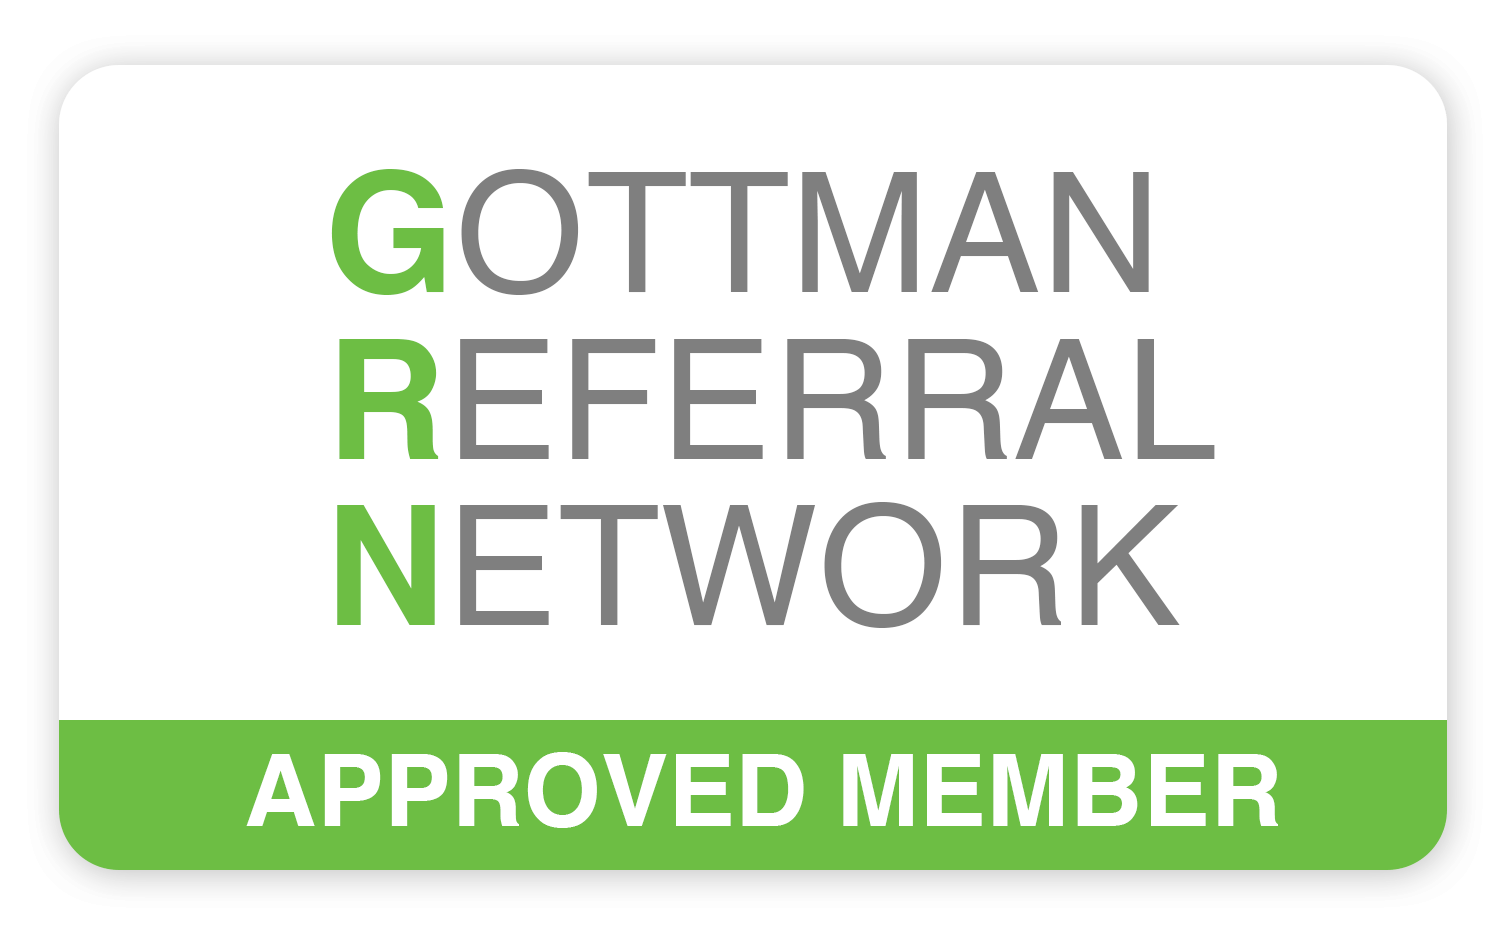 Nadia Gorduza's profile on the Gottman Referral Network